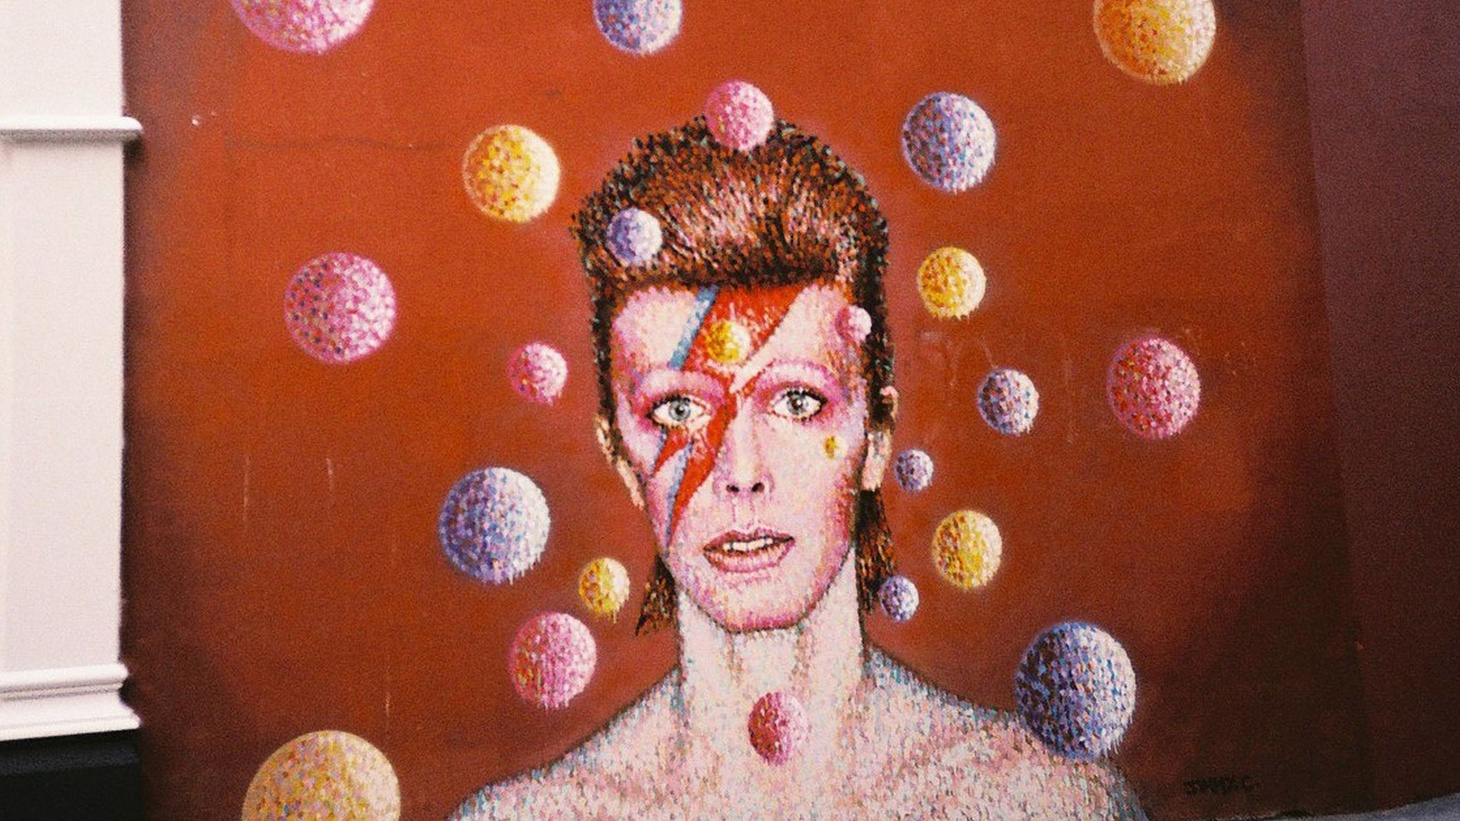 Nic Harcourt revisits his interview with rock legend David Bowie.